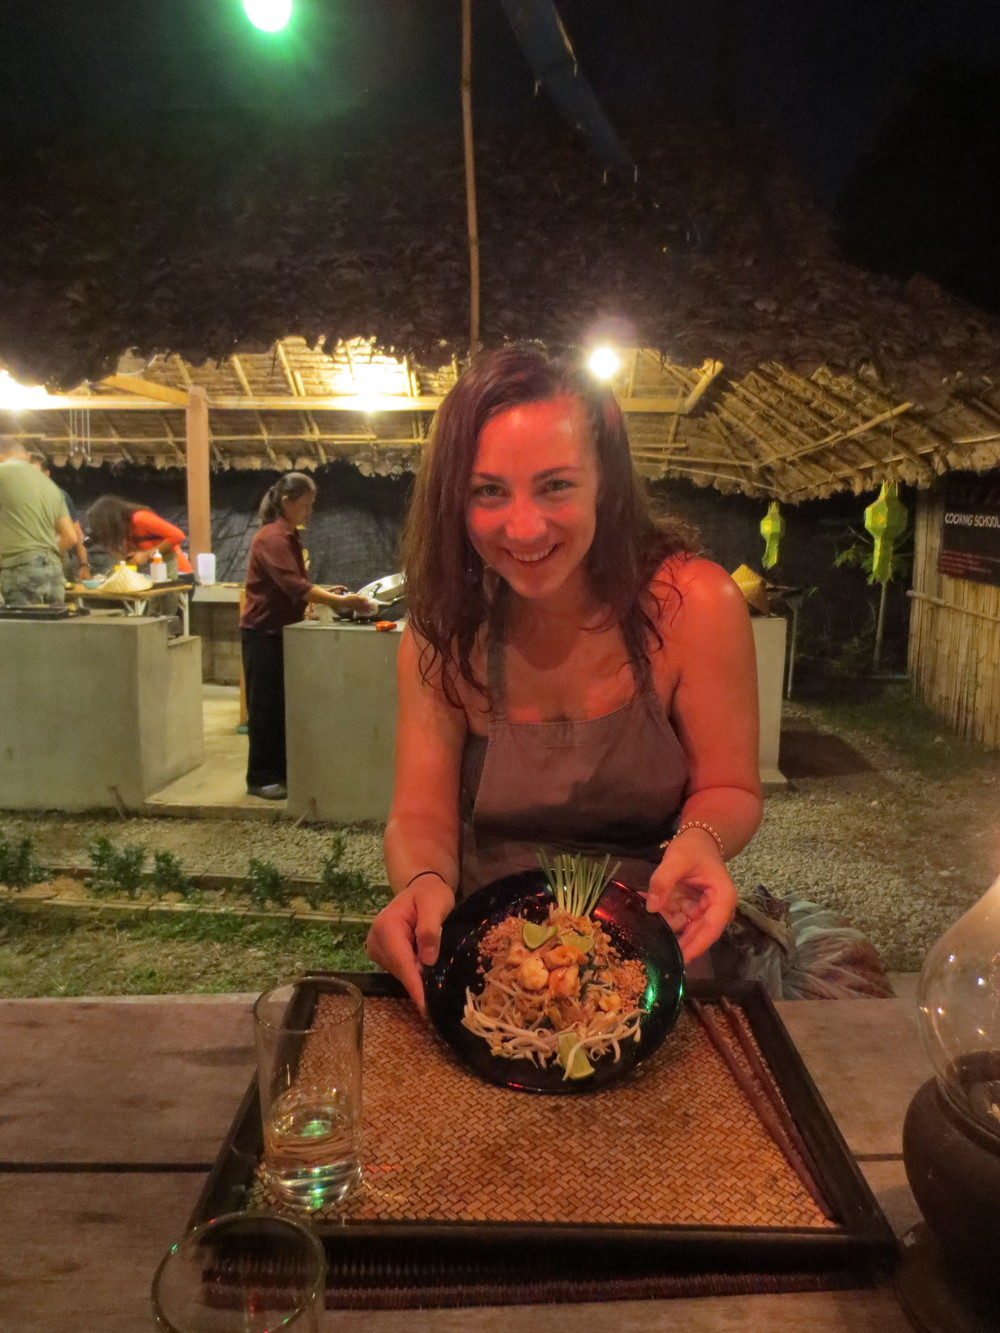 Jess' Pad Thai in the Land of Smiles (click image for more photos)